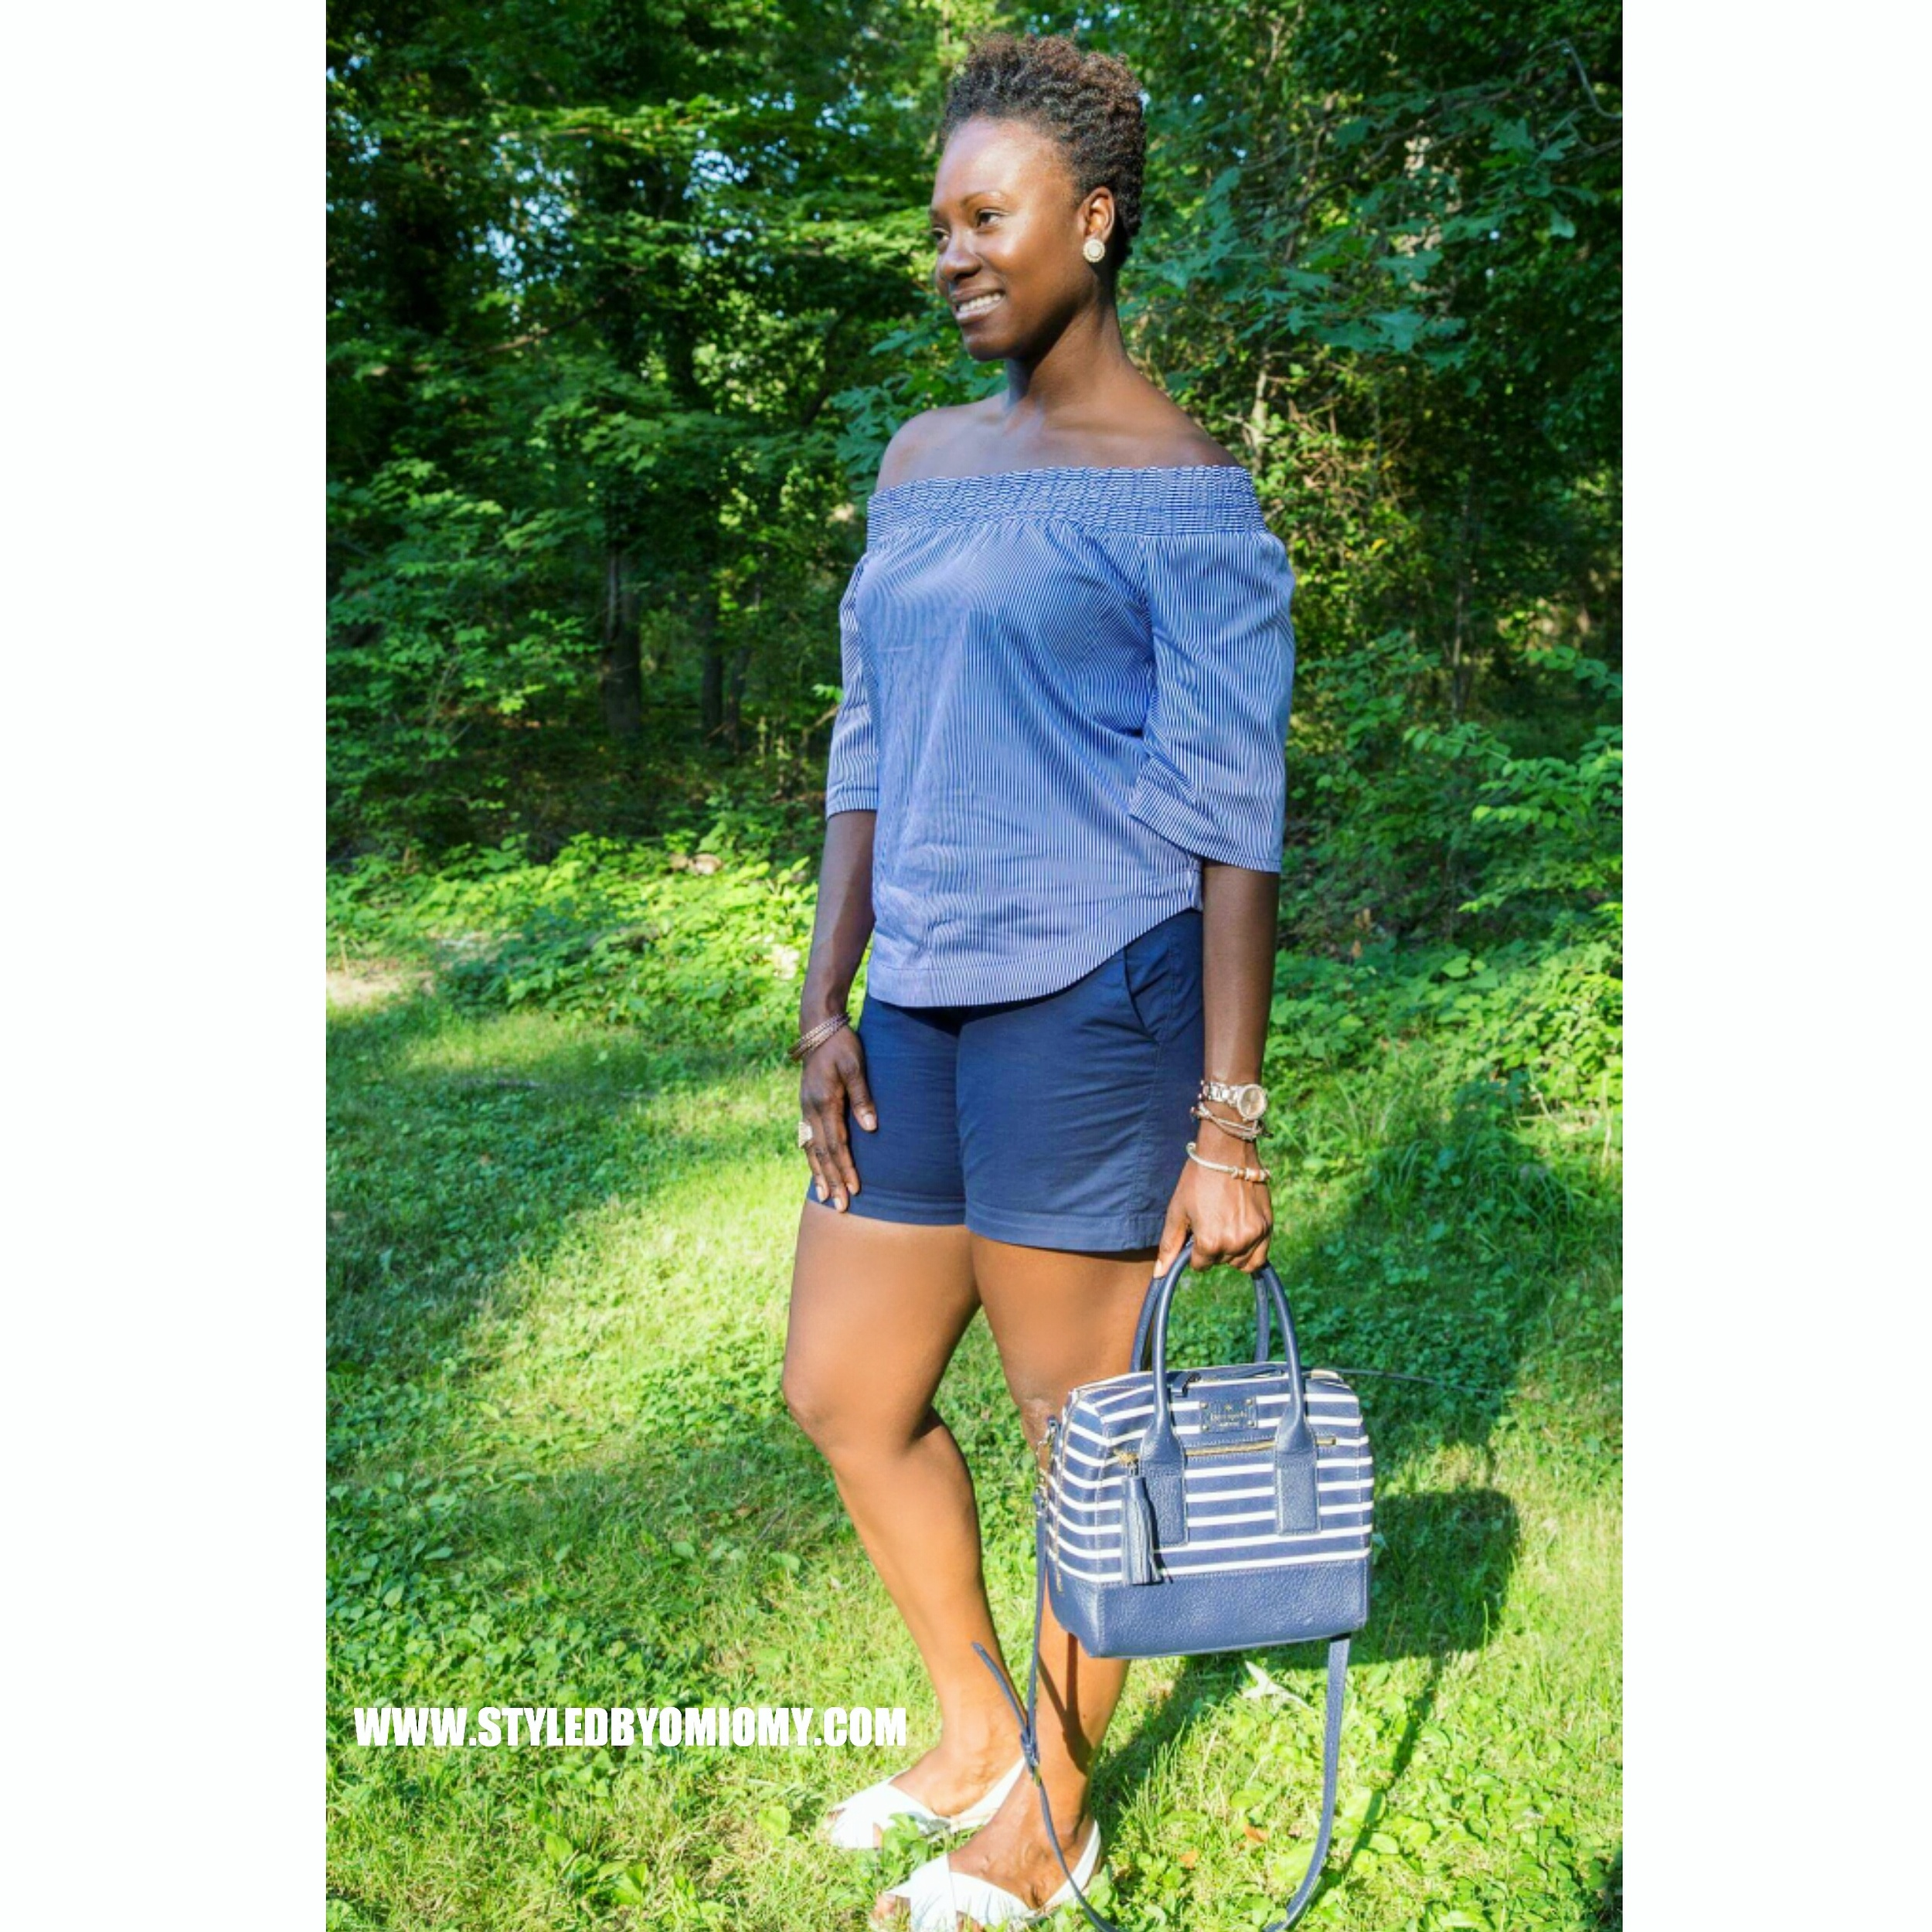 off the shoulder, natural hair styles